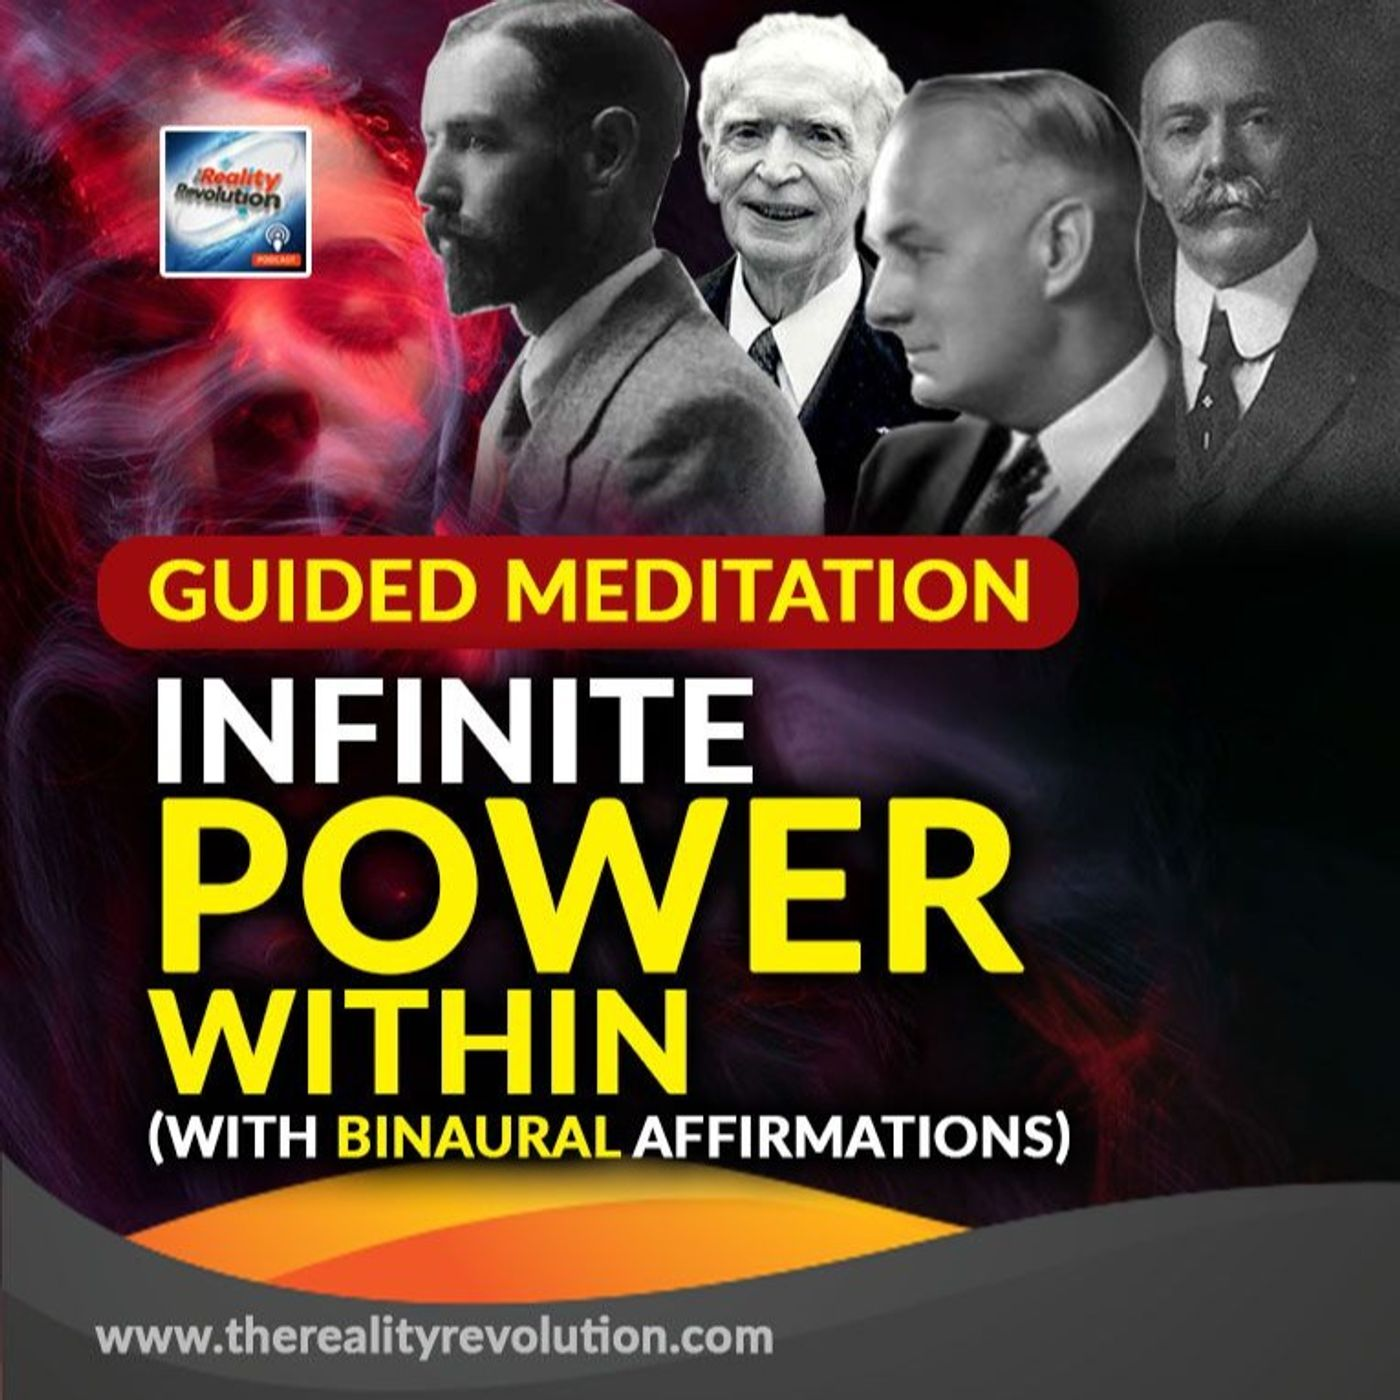 Guided Meditation - Infinite Power Within (With Binaural Affirmations)